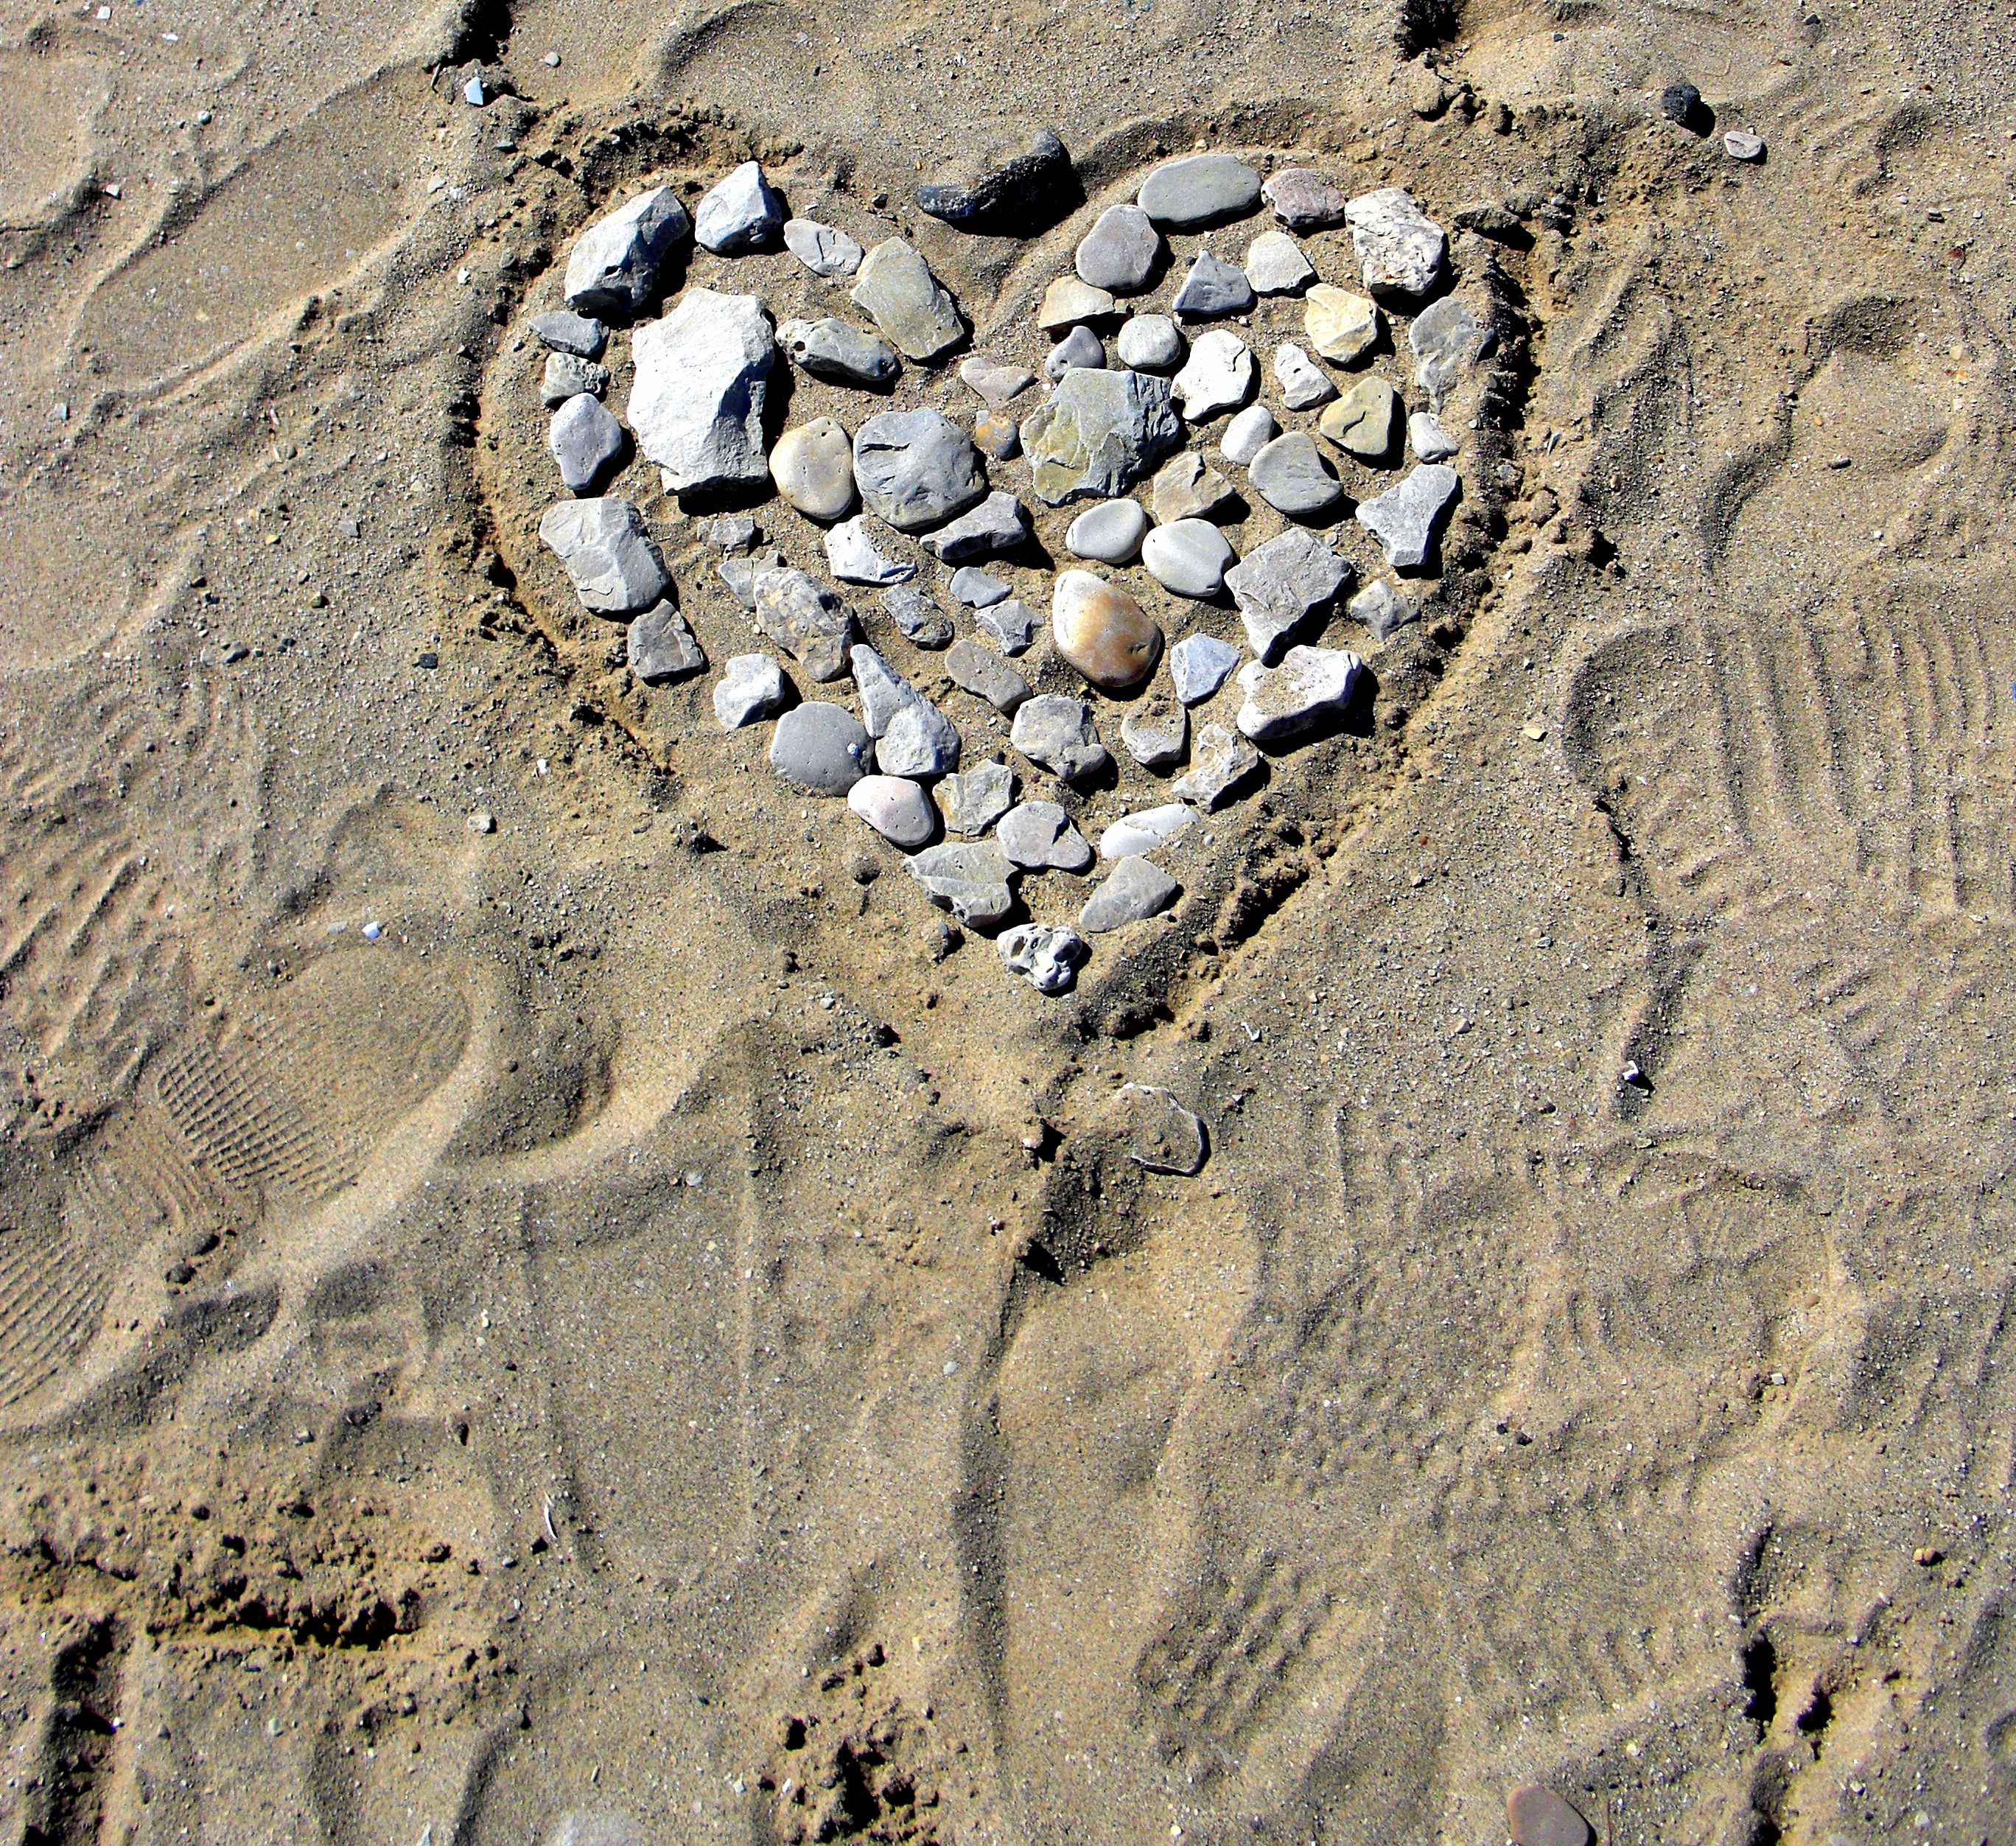 Beach Heart, Emotion, Expression, Footprints, Heart, HQ Photo